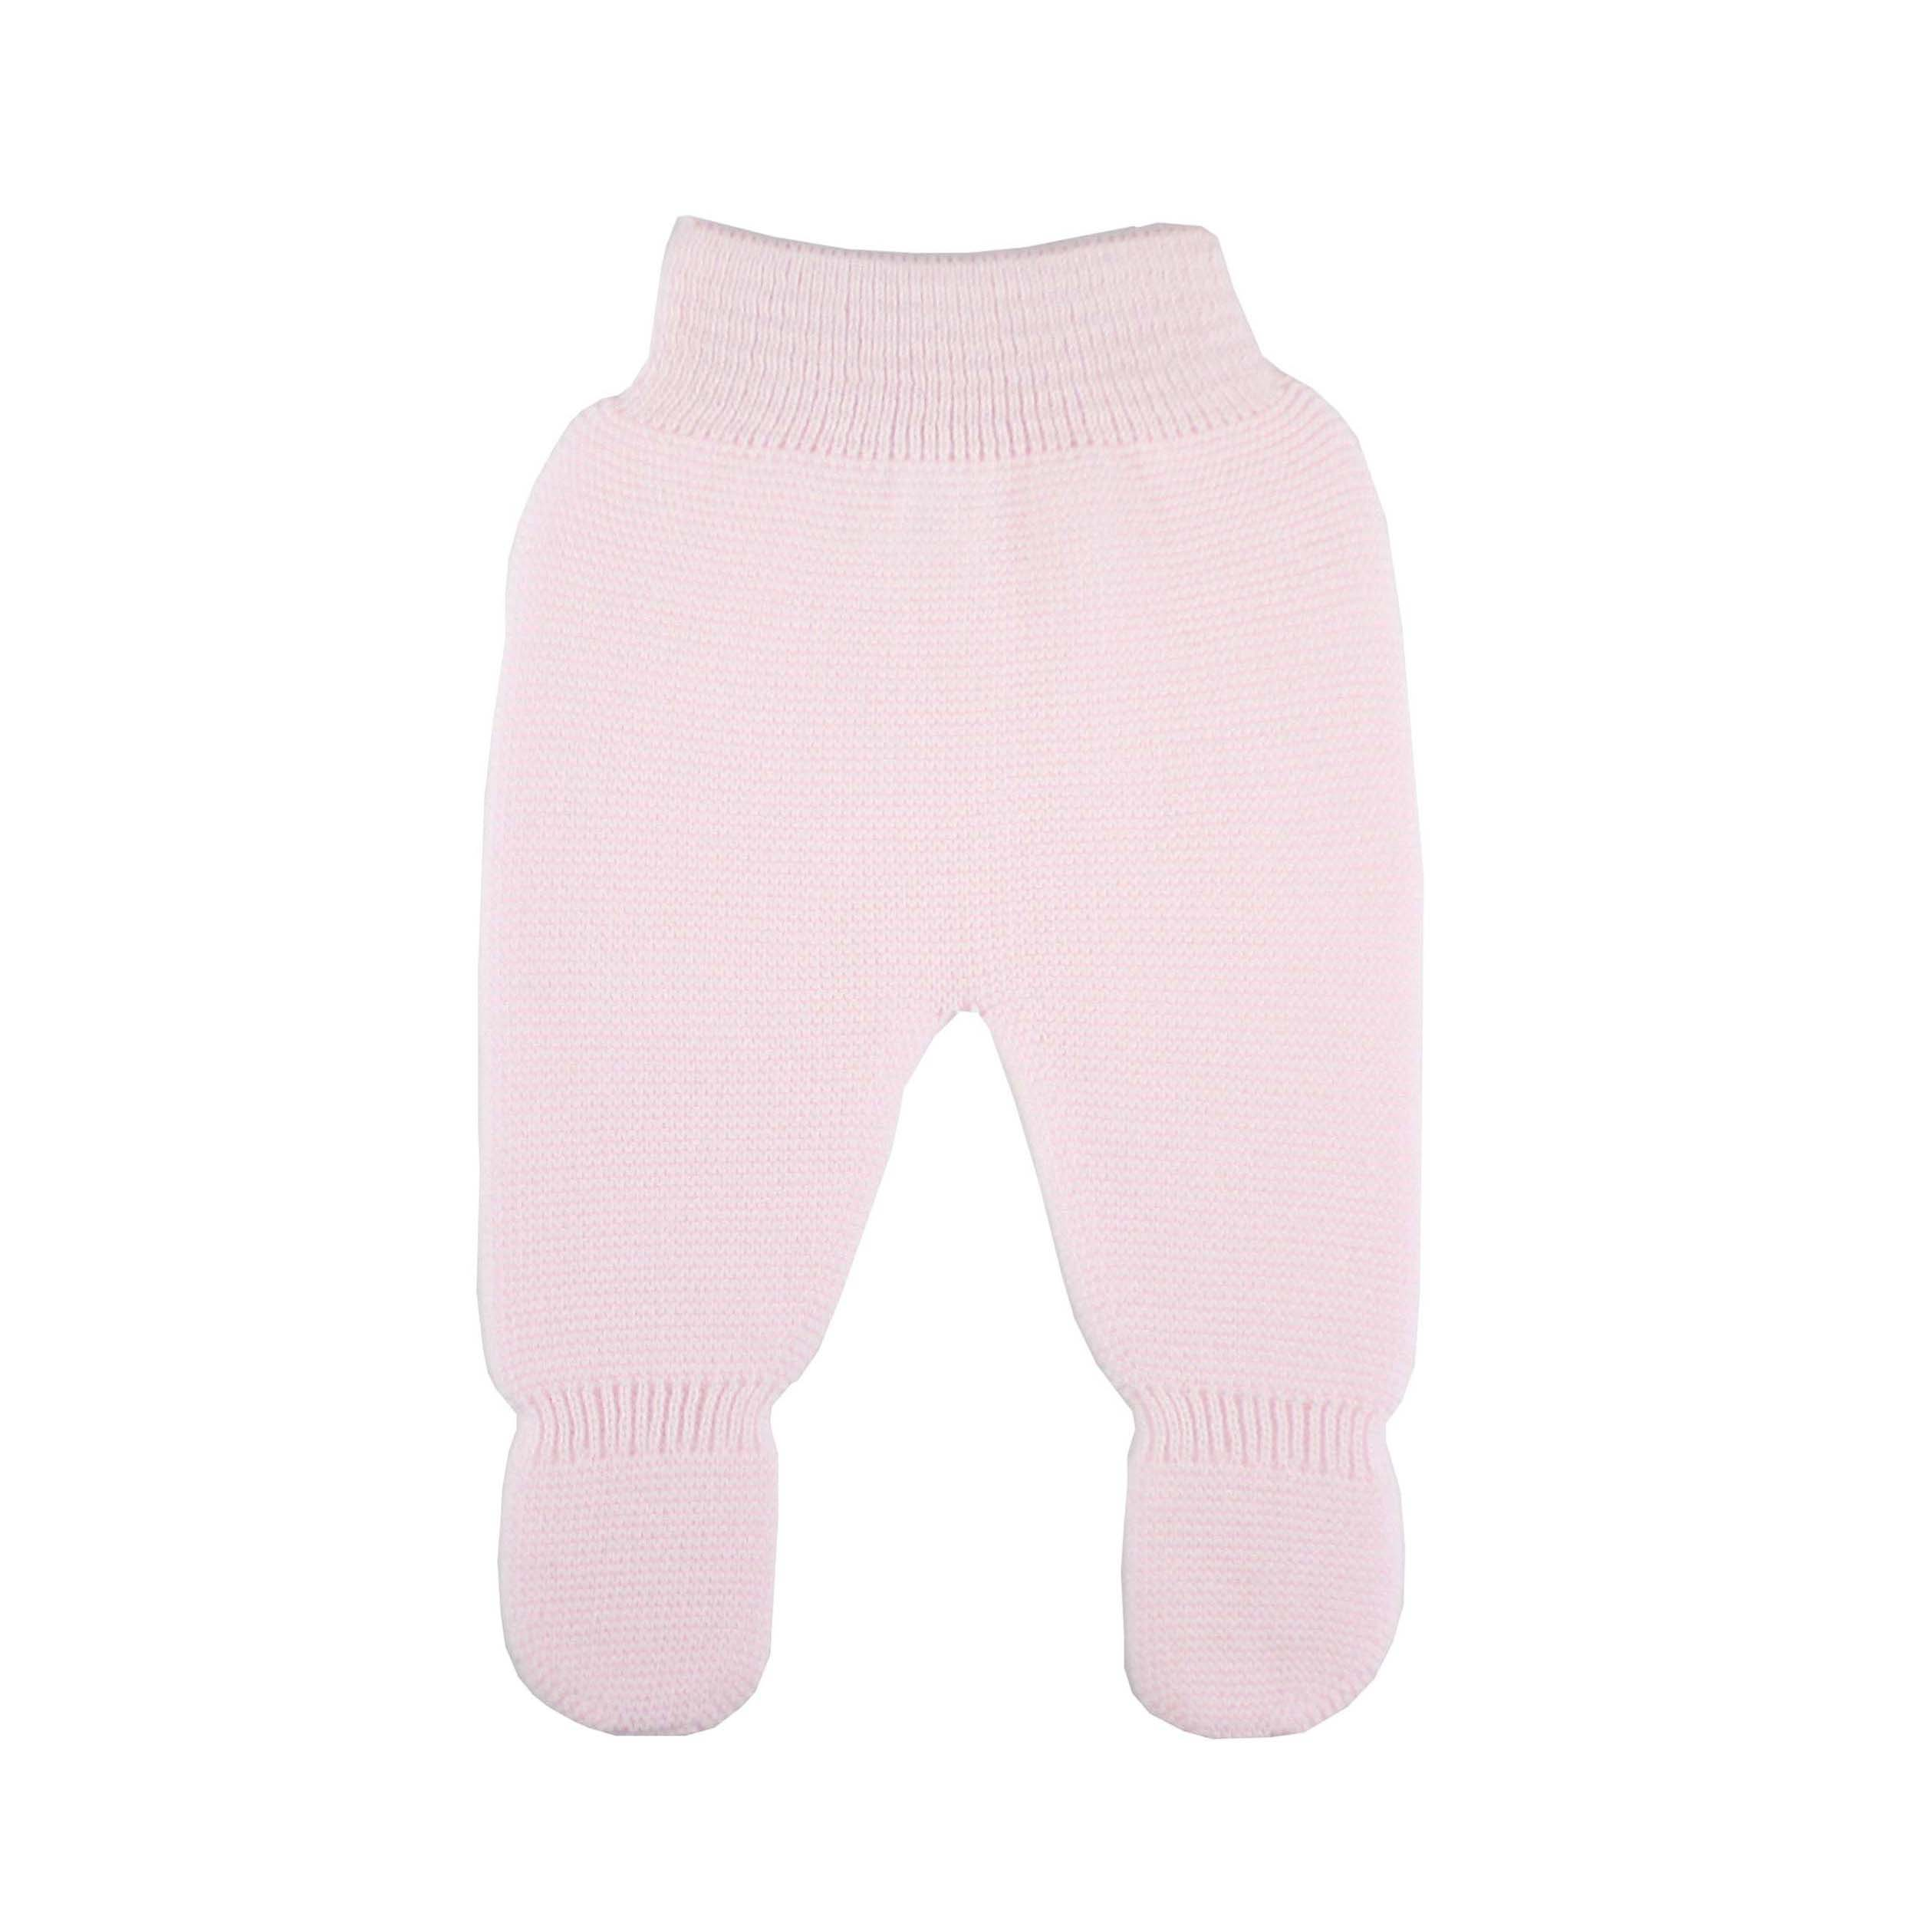 c9d8e10d14913 Pink thick knit baby leggings